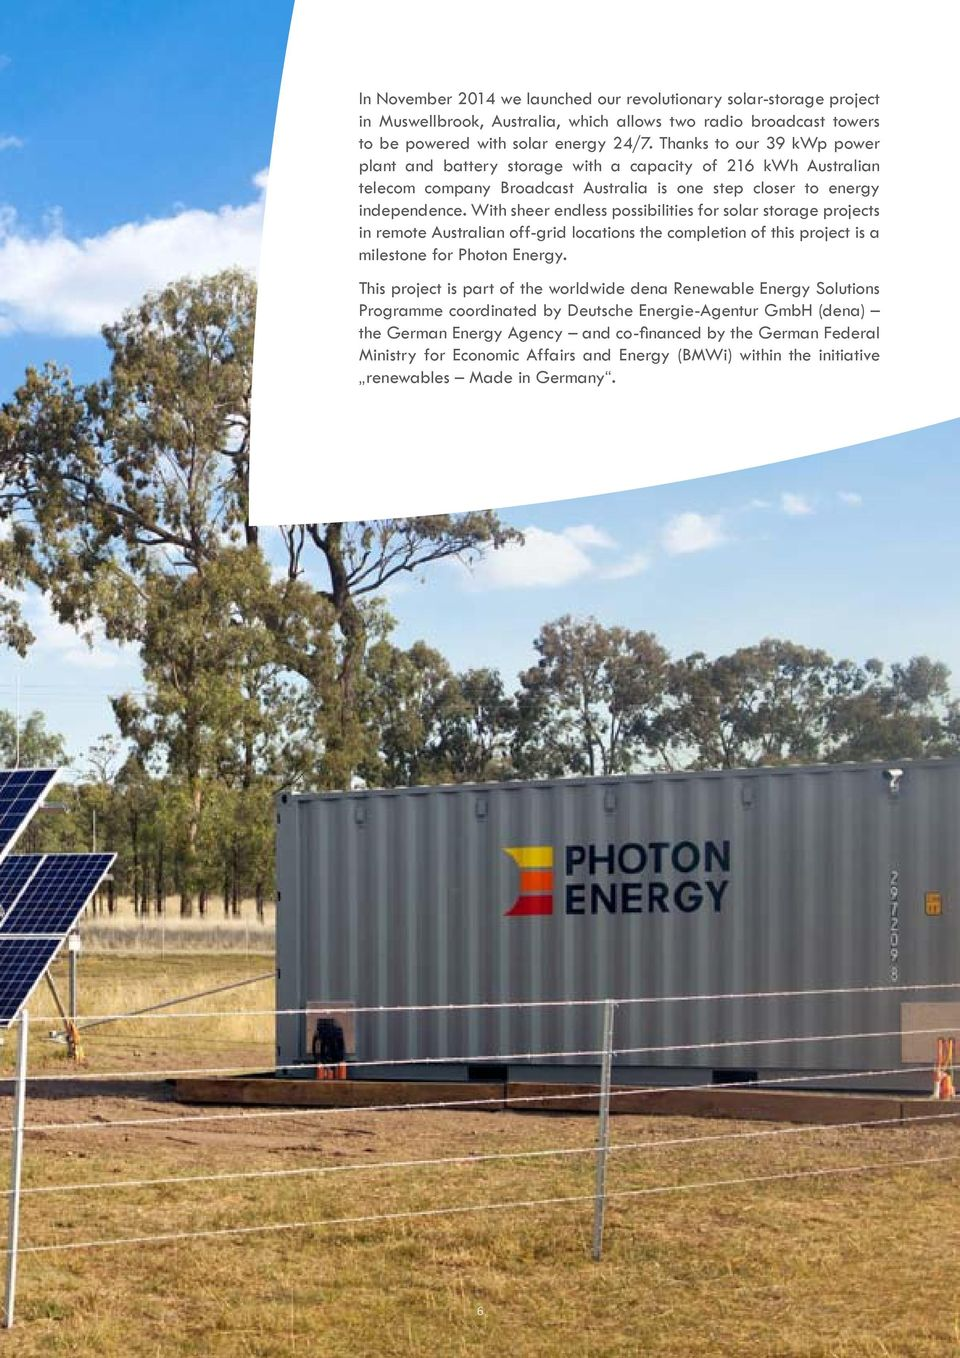 With sheer endless possibilities for solar storage projects in remote Australian off-grid locations the completion of this project is a milestone for Photon Energy.